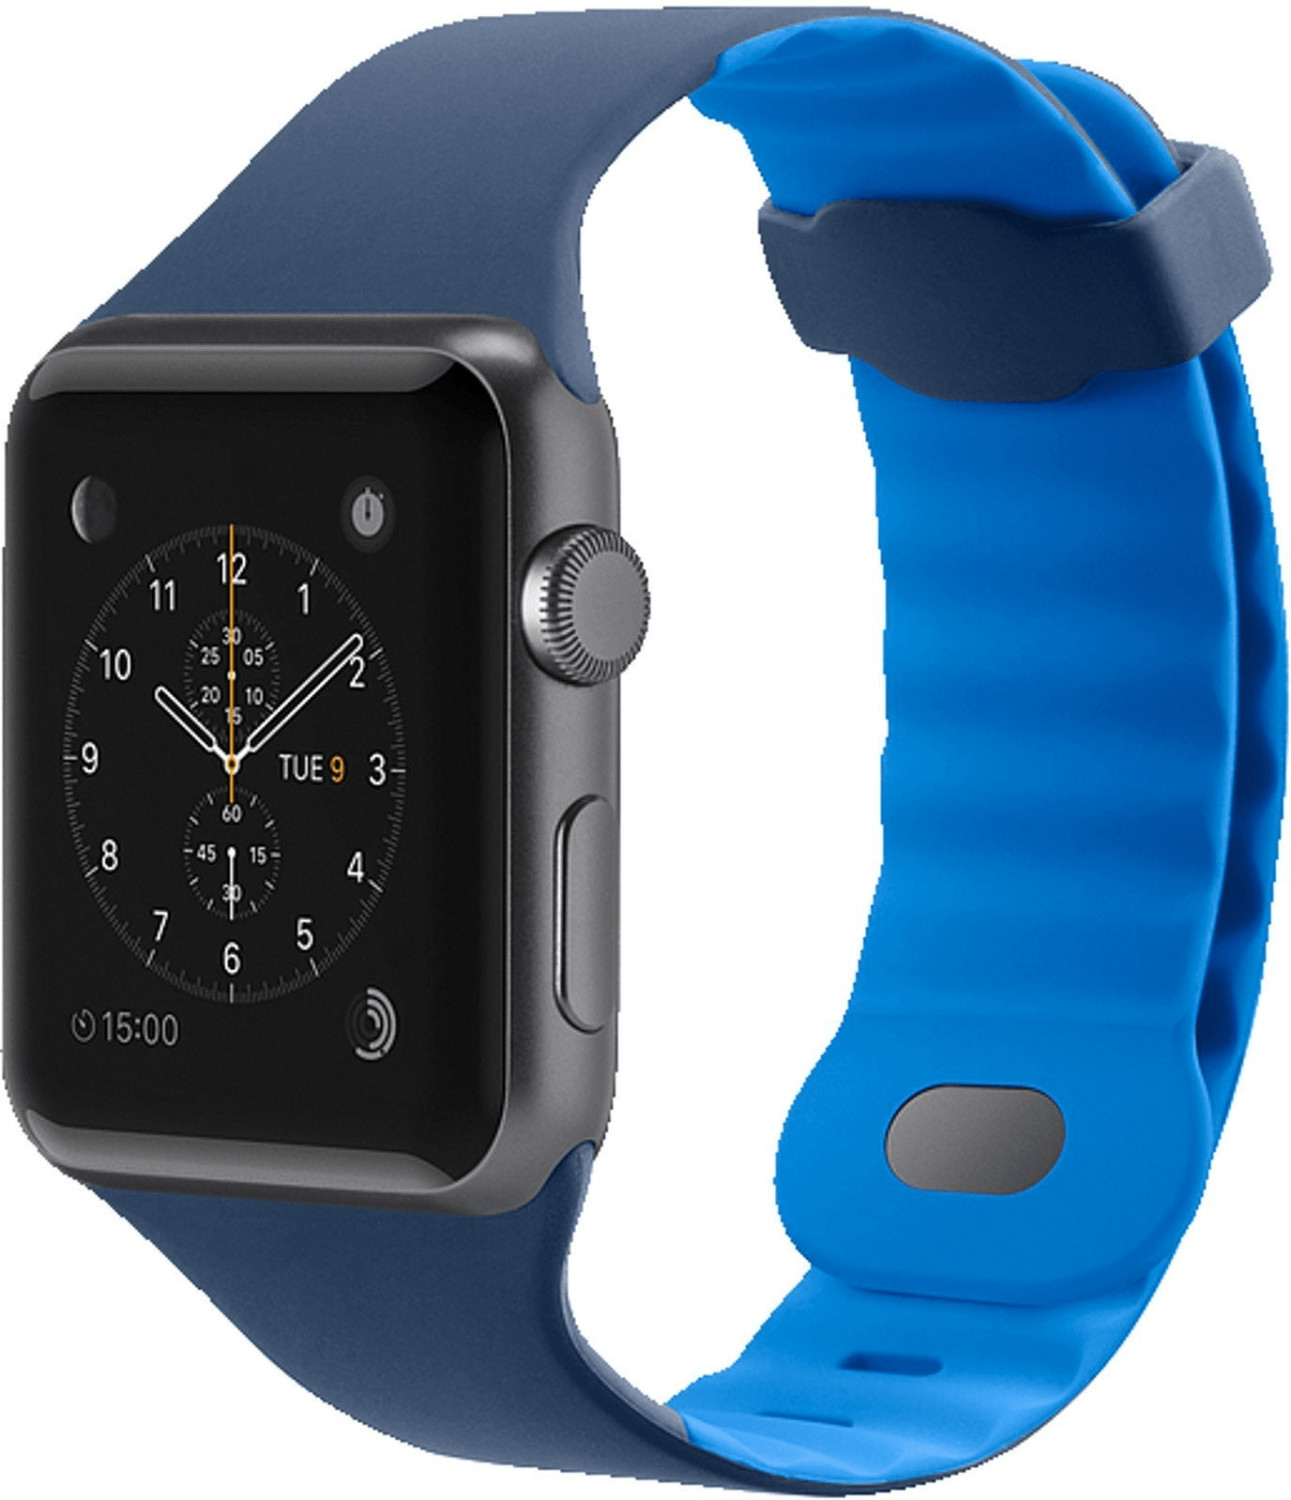 Belkin Sport Band for Apple Watch 42mm marine blue